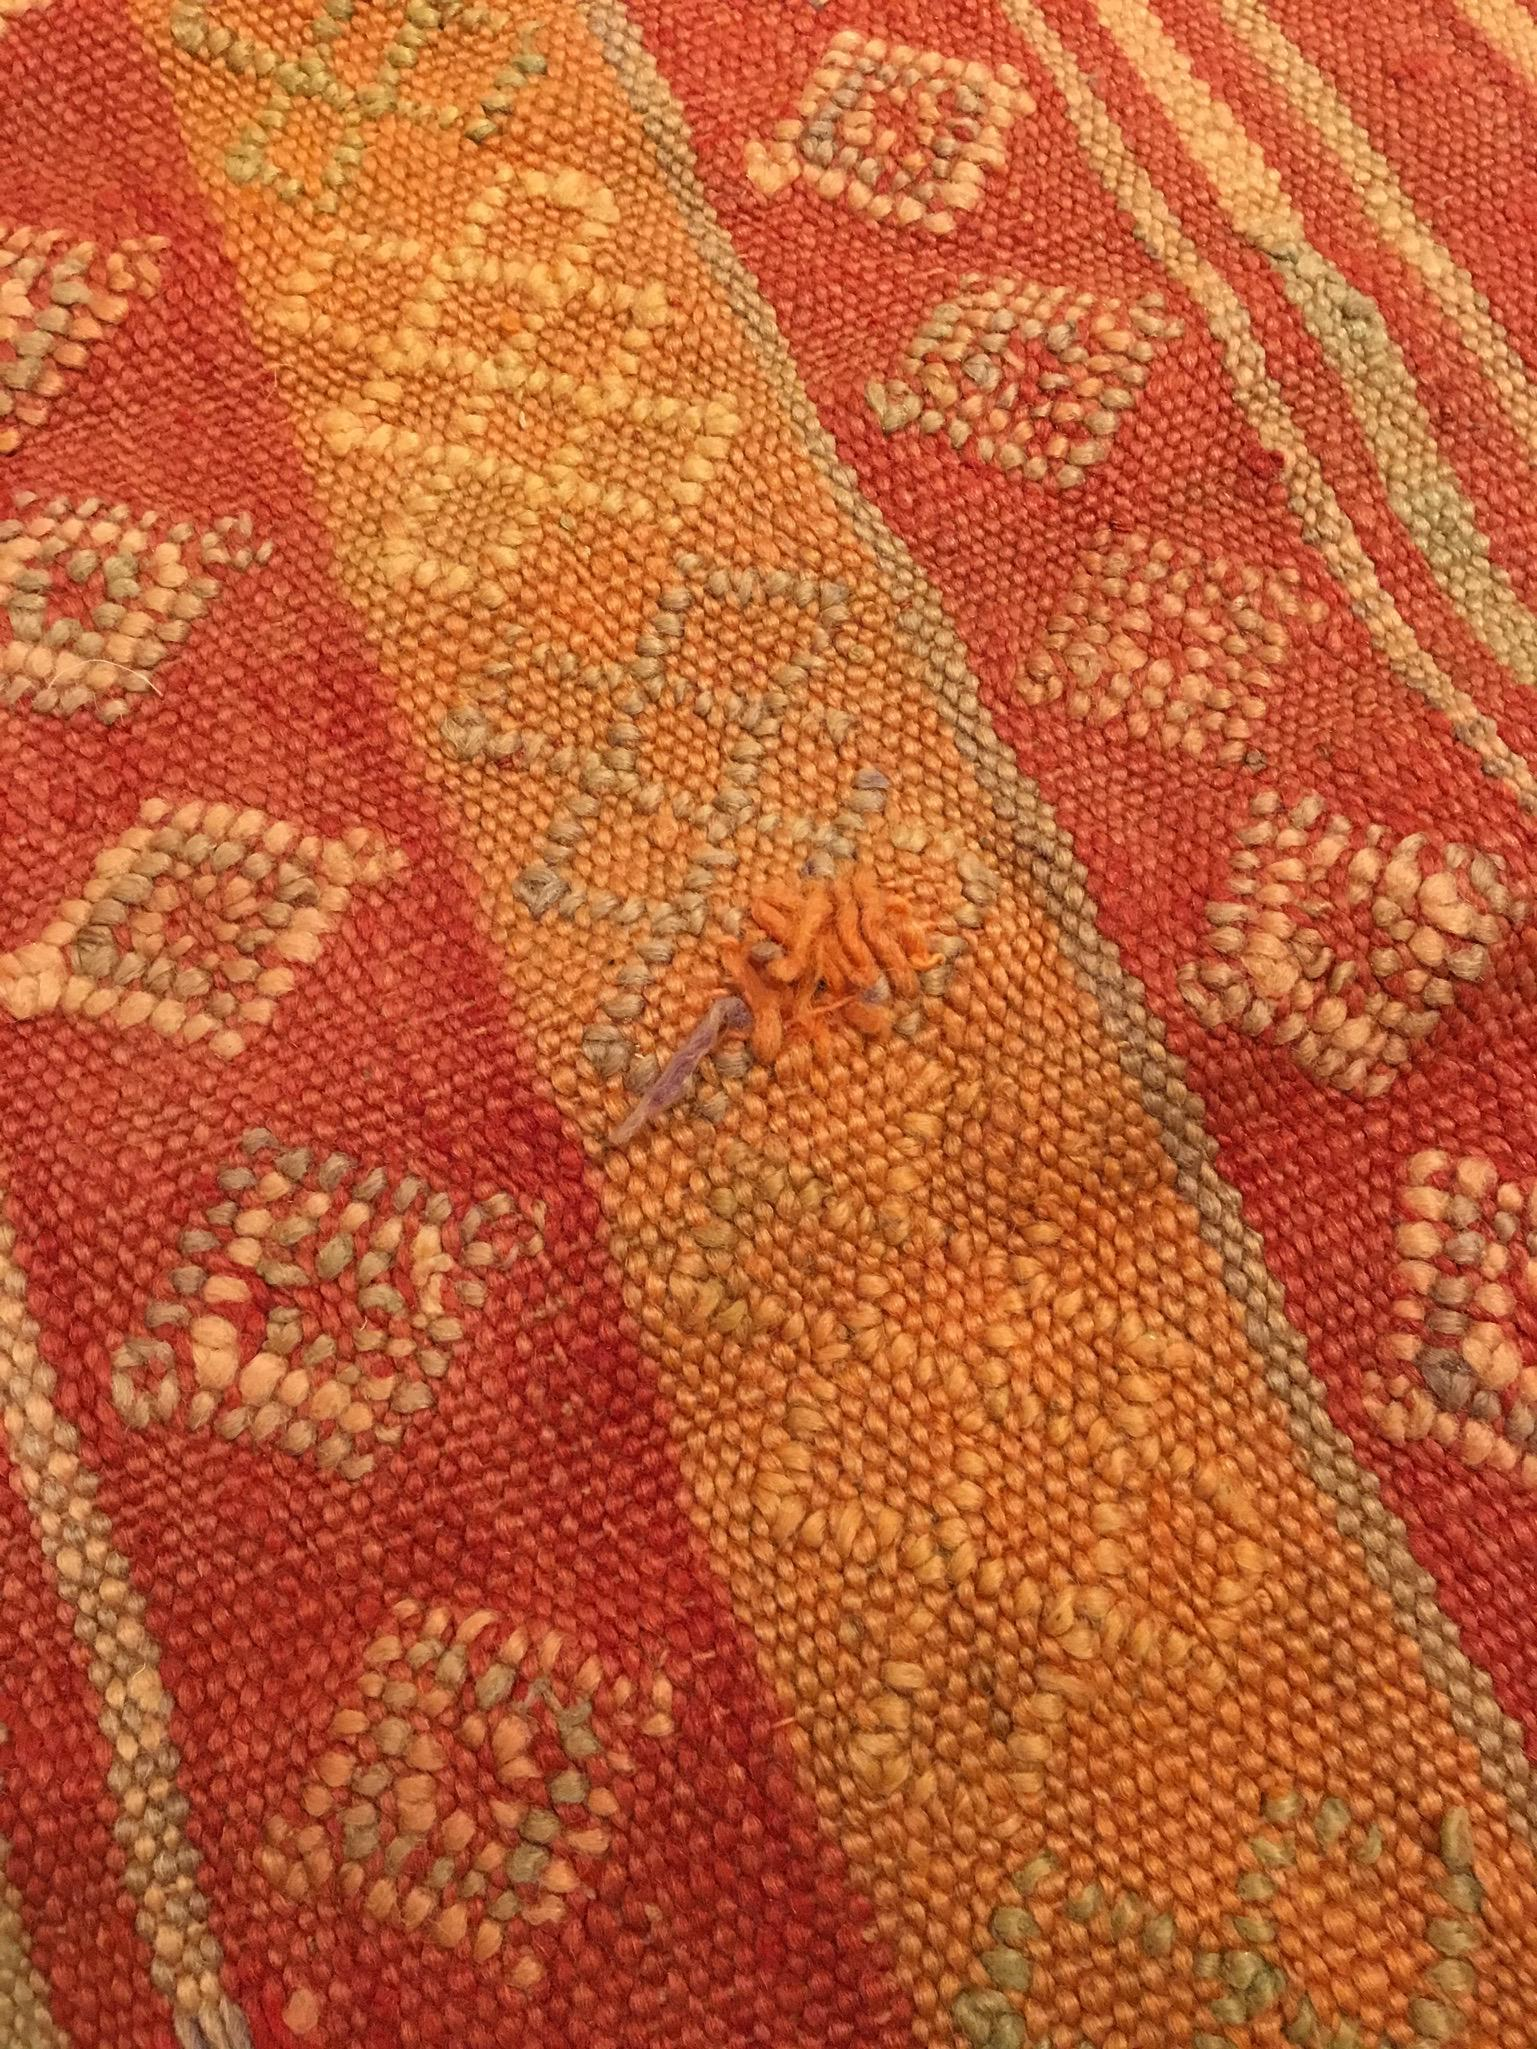 Red And Orange Flat Woven Moroccan Rug   Image 5 Of 9